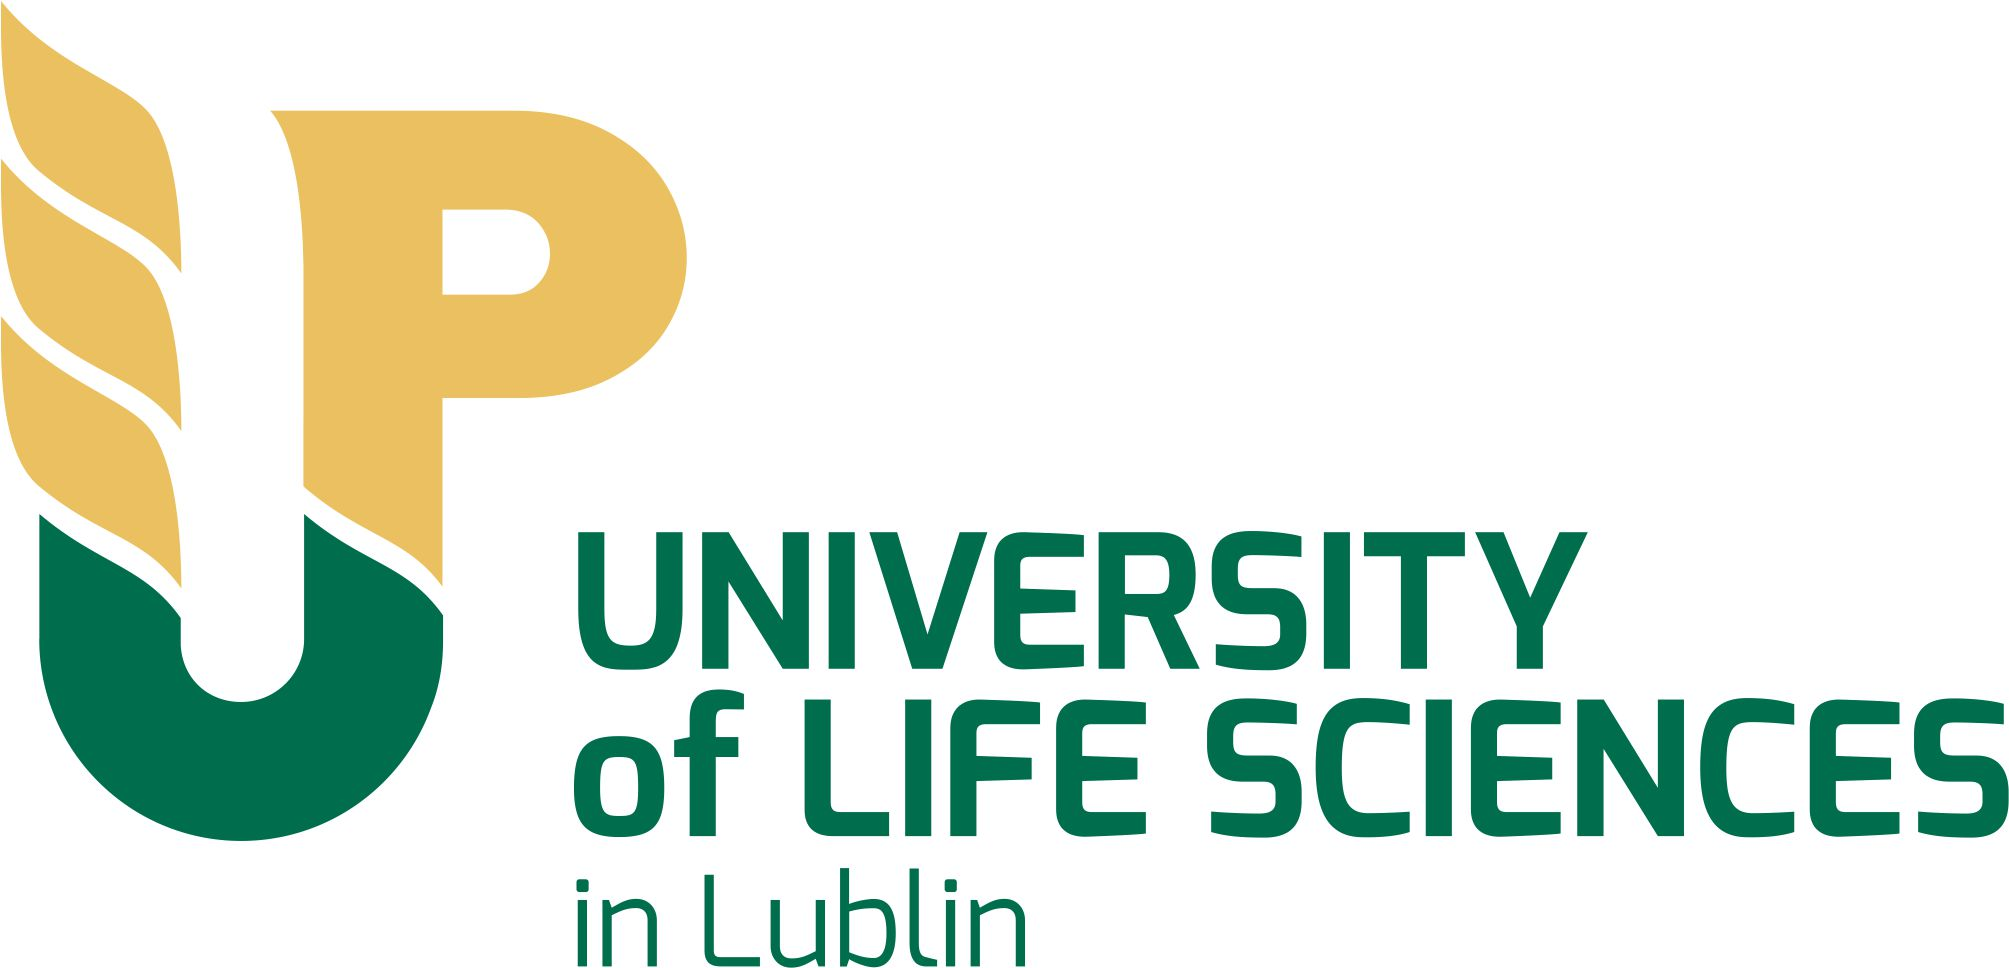 University of Life Sciences logo